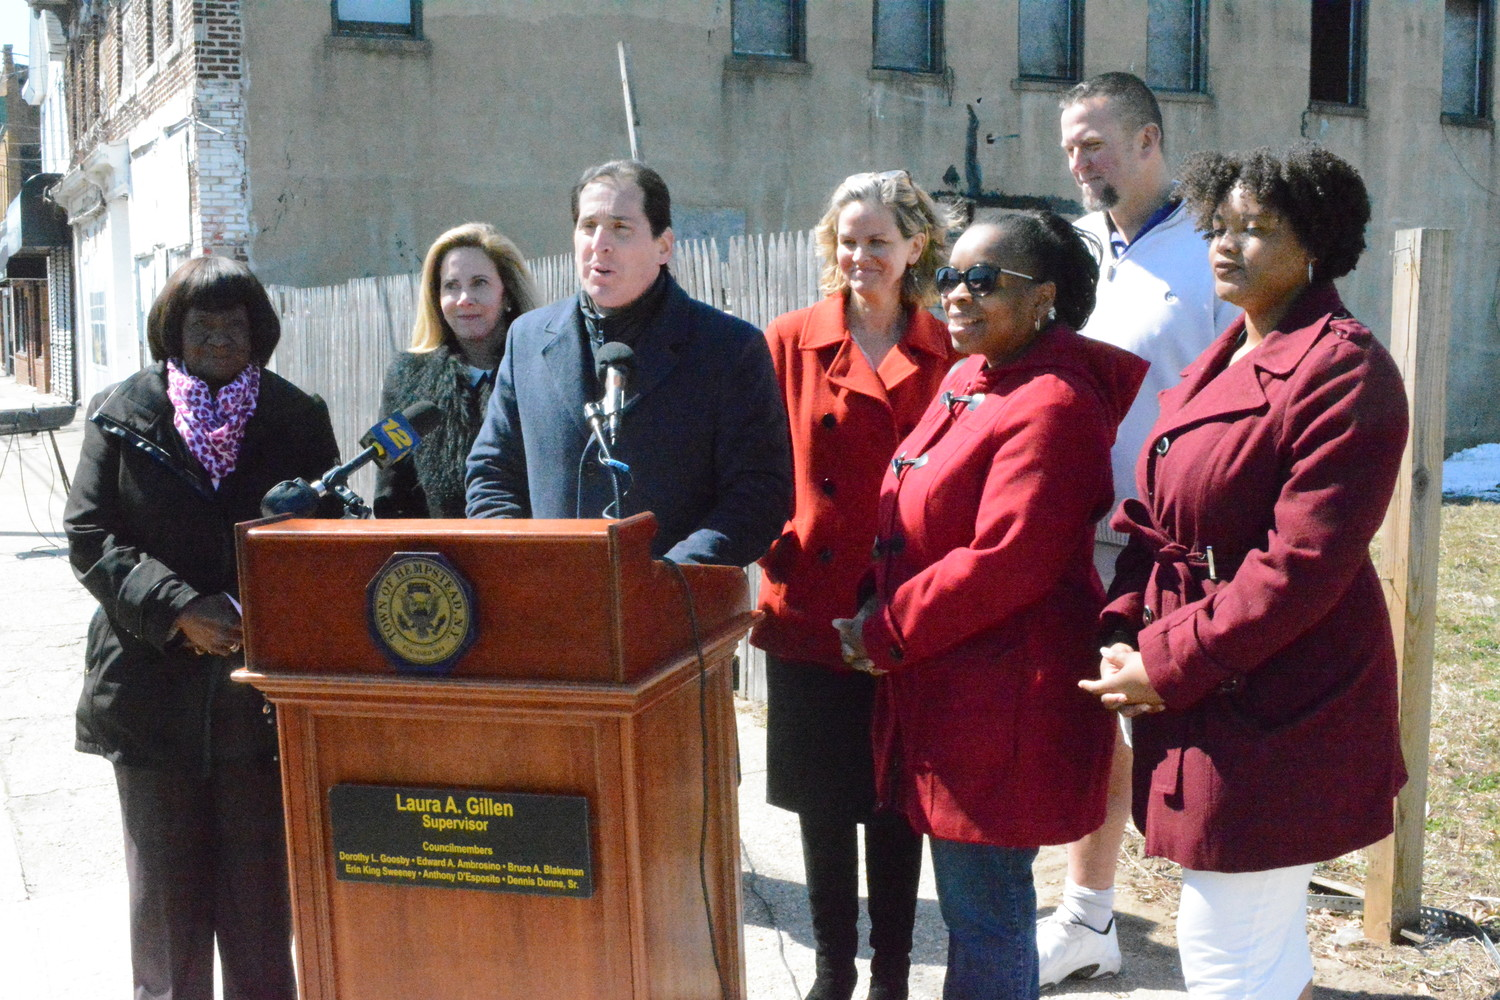 Sen. Todd Kaminsky, at lectern, announced a $1 million state grant for Baldwin's downtown development on Monday. Joining him, from left, were Town of Hempstead Councilwoman Dorothy Goosby, Town Supervisor Laura Gillen, County Executive Laura Curran, Board of Education Trustee Karyn Reid, Chamber of Commerce President Erik Mahler and legislative assistant Kiana Bierria-Anderson.